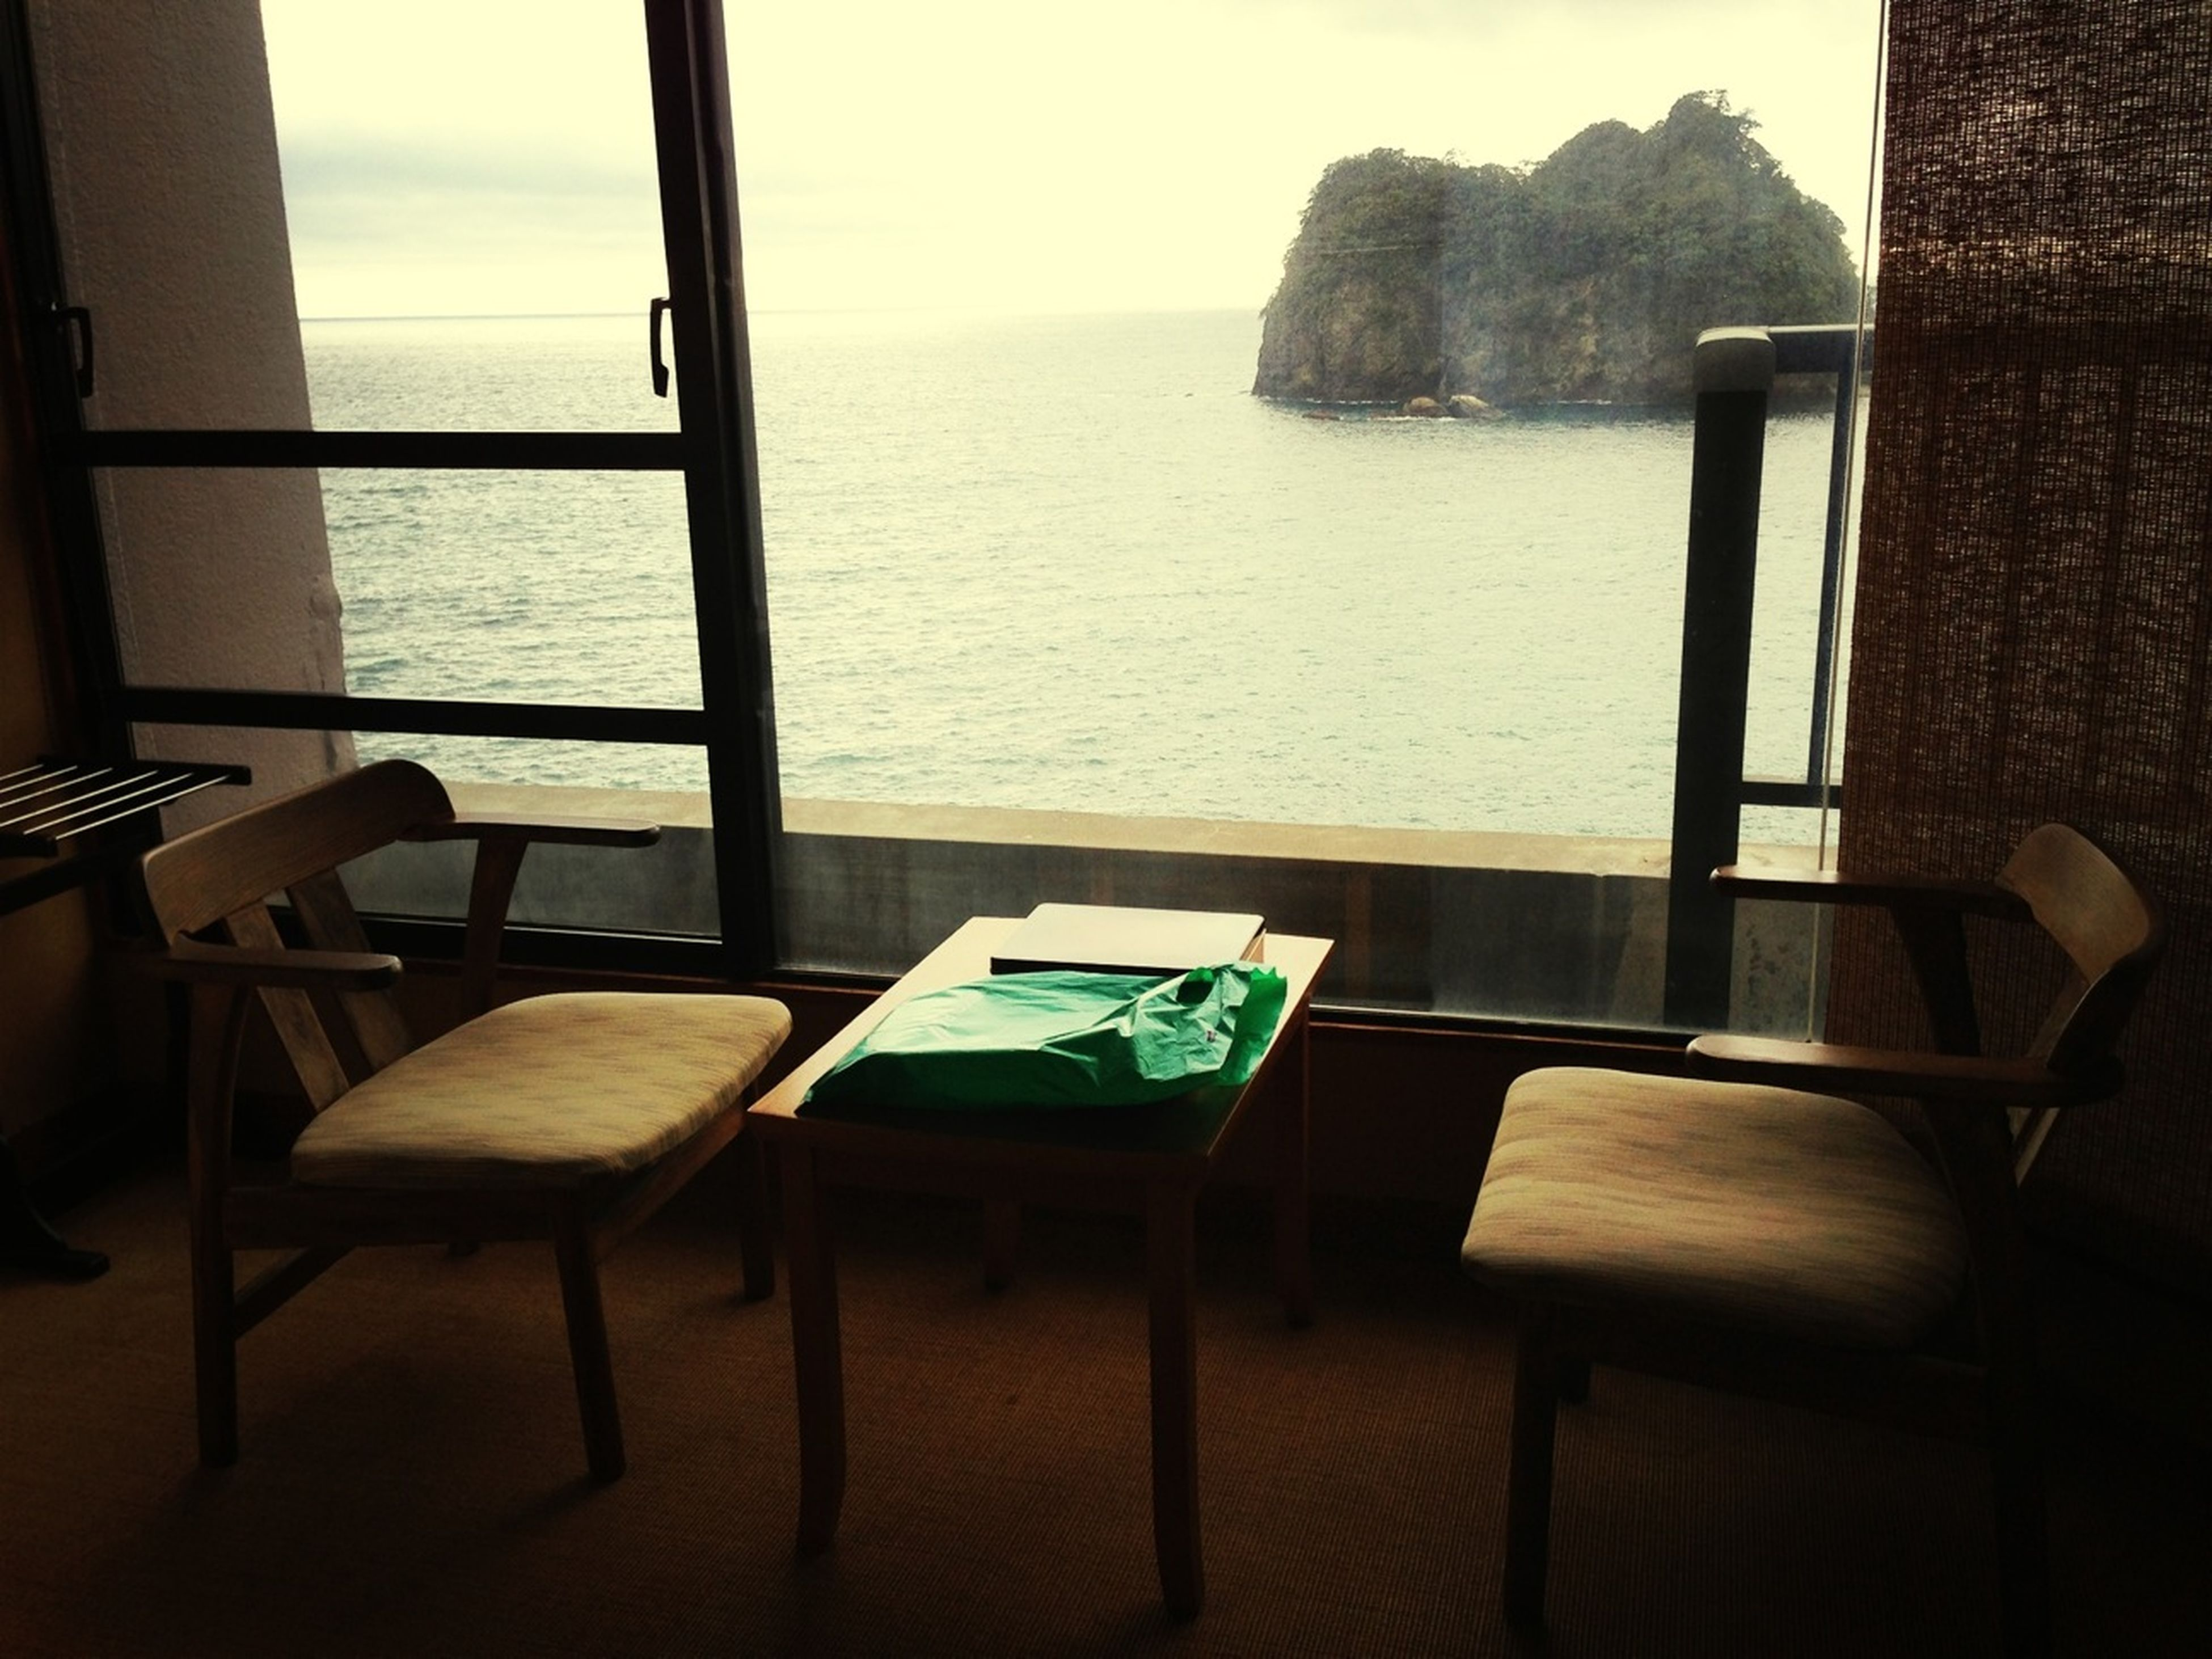 chair, table, absence, empty, sea, water, indoors, seat, furniture, relaxation, place setting, restaurant, tranquility, deck chair, tranquil scene, day, sunlight, no people, window, wood - material